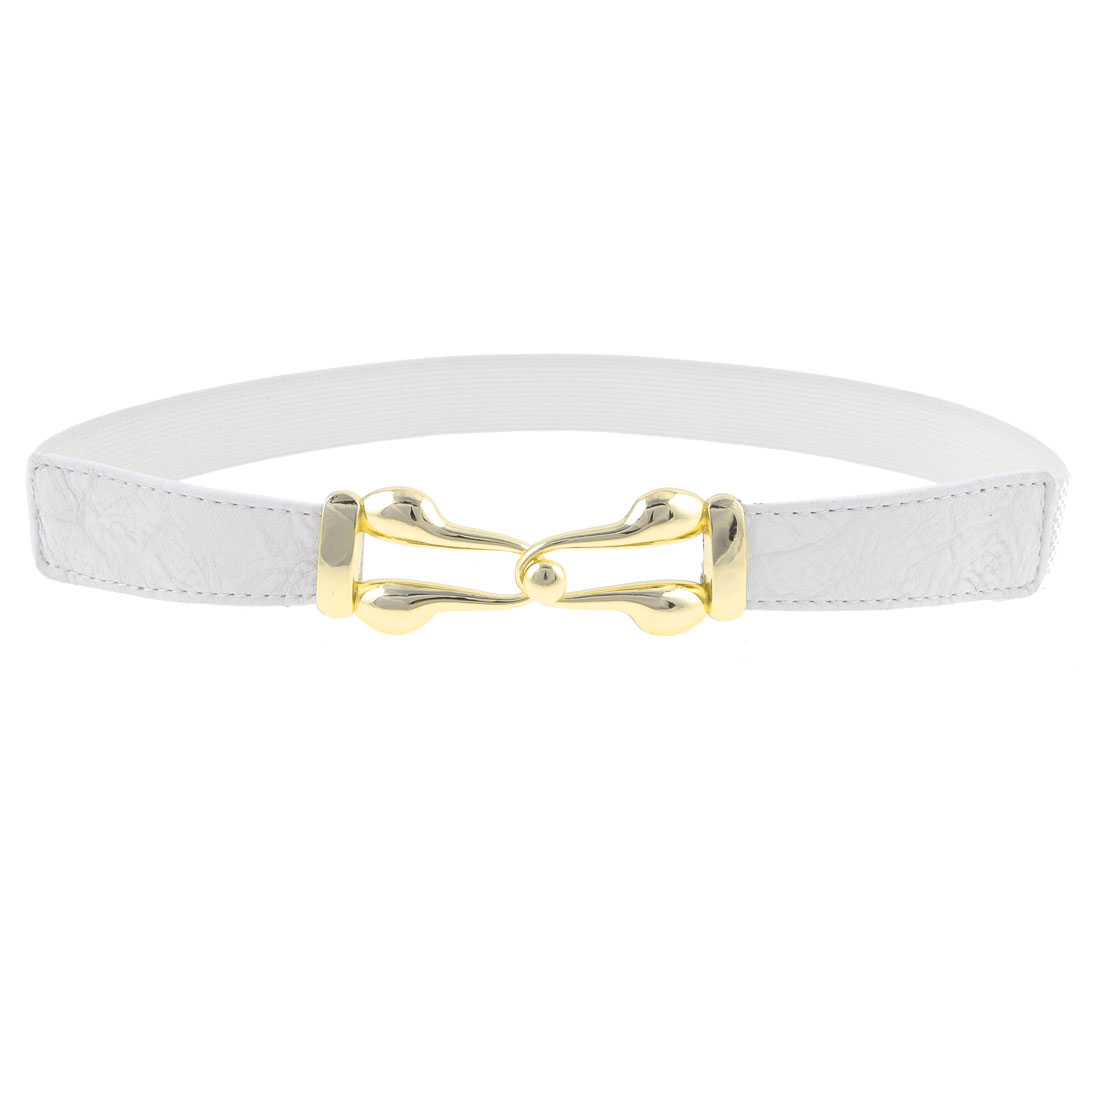 Faux Leather Front Metal Interlock Buckle White Stretch Waist Belt for Ladies